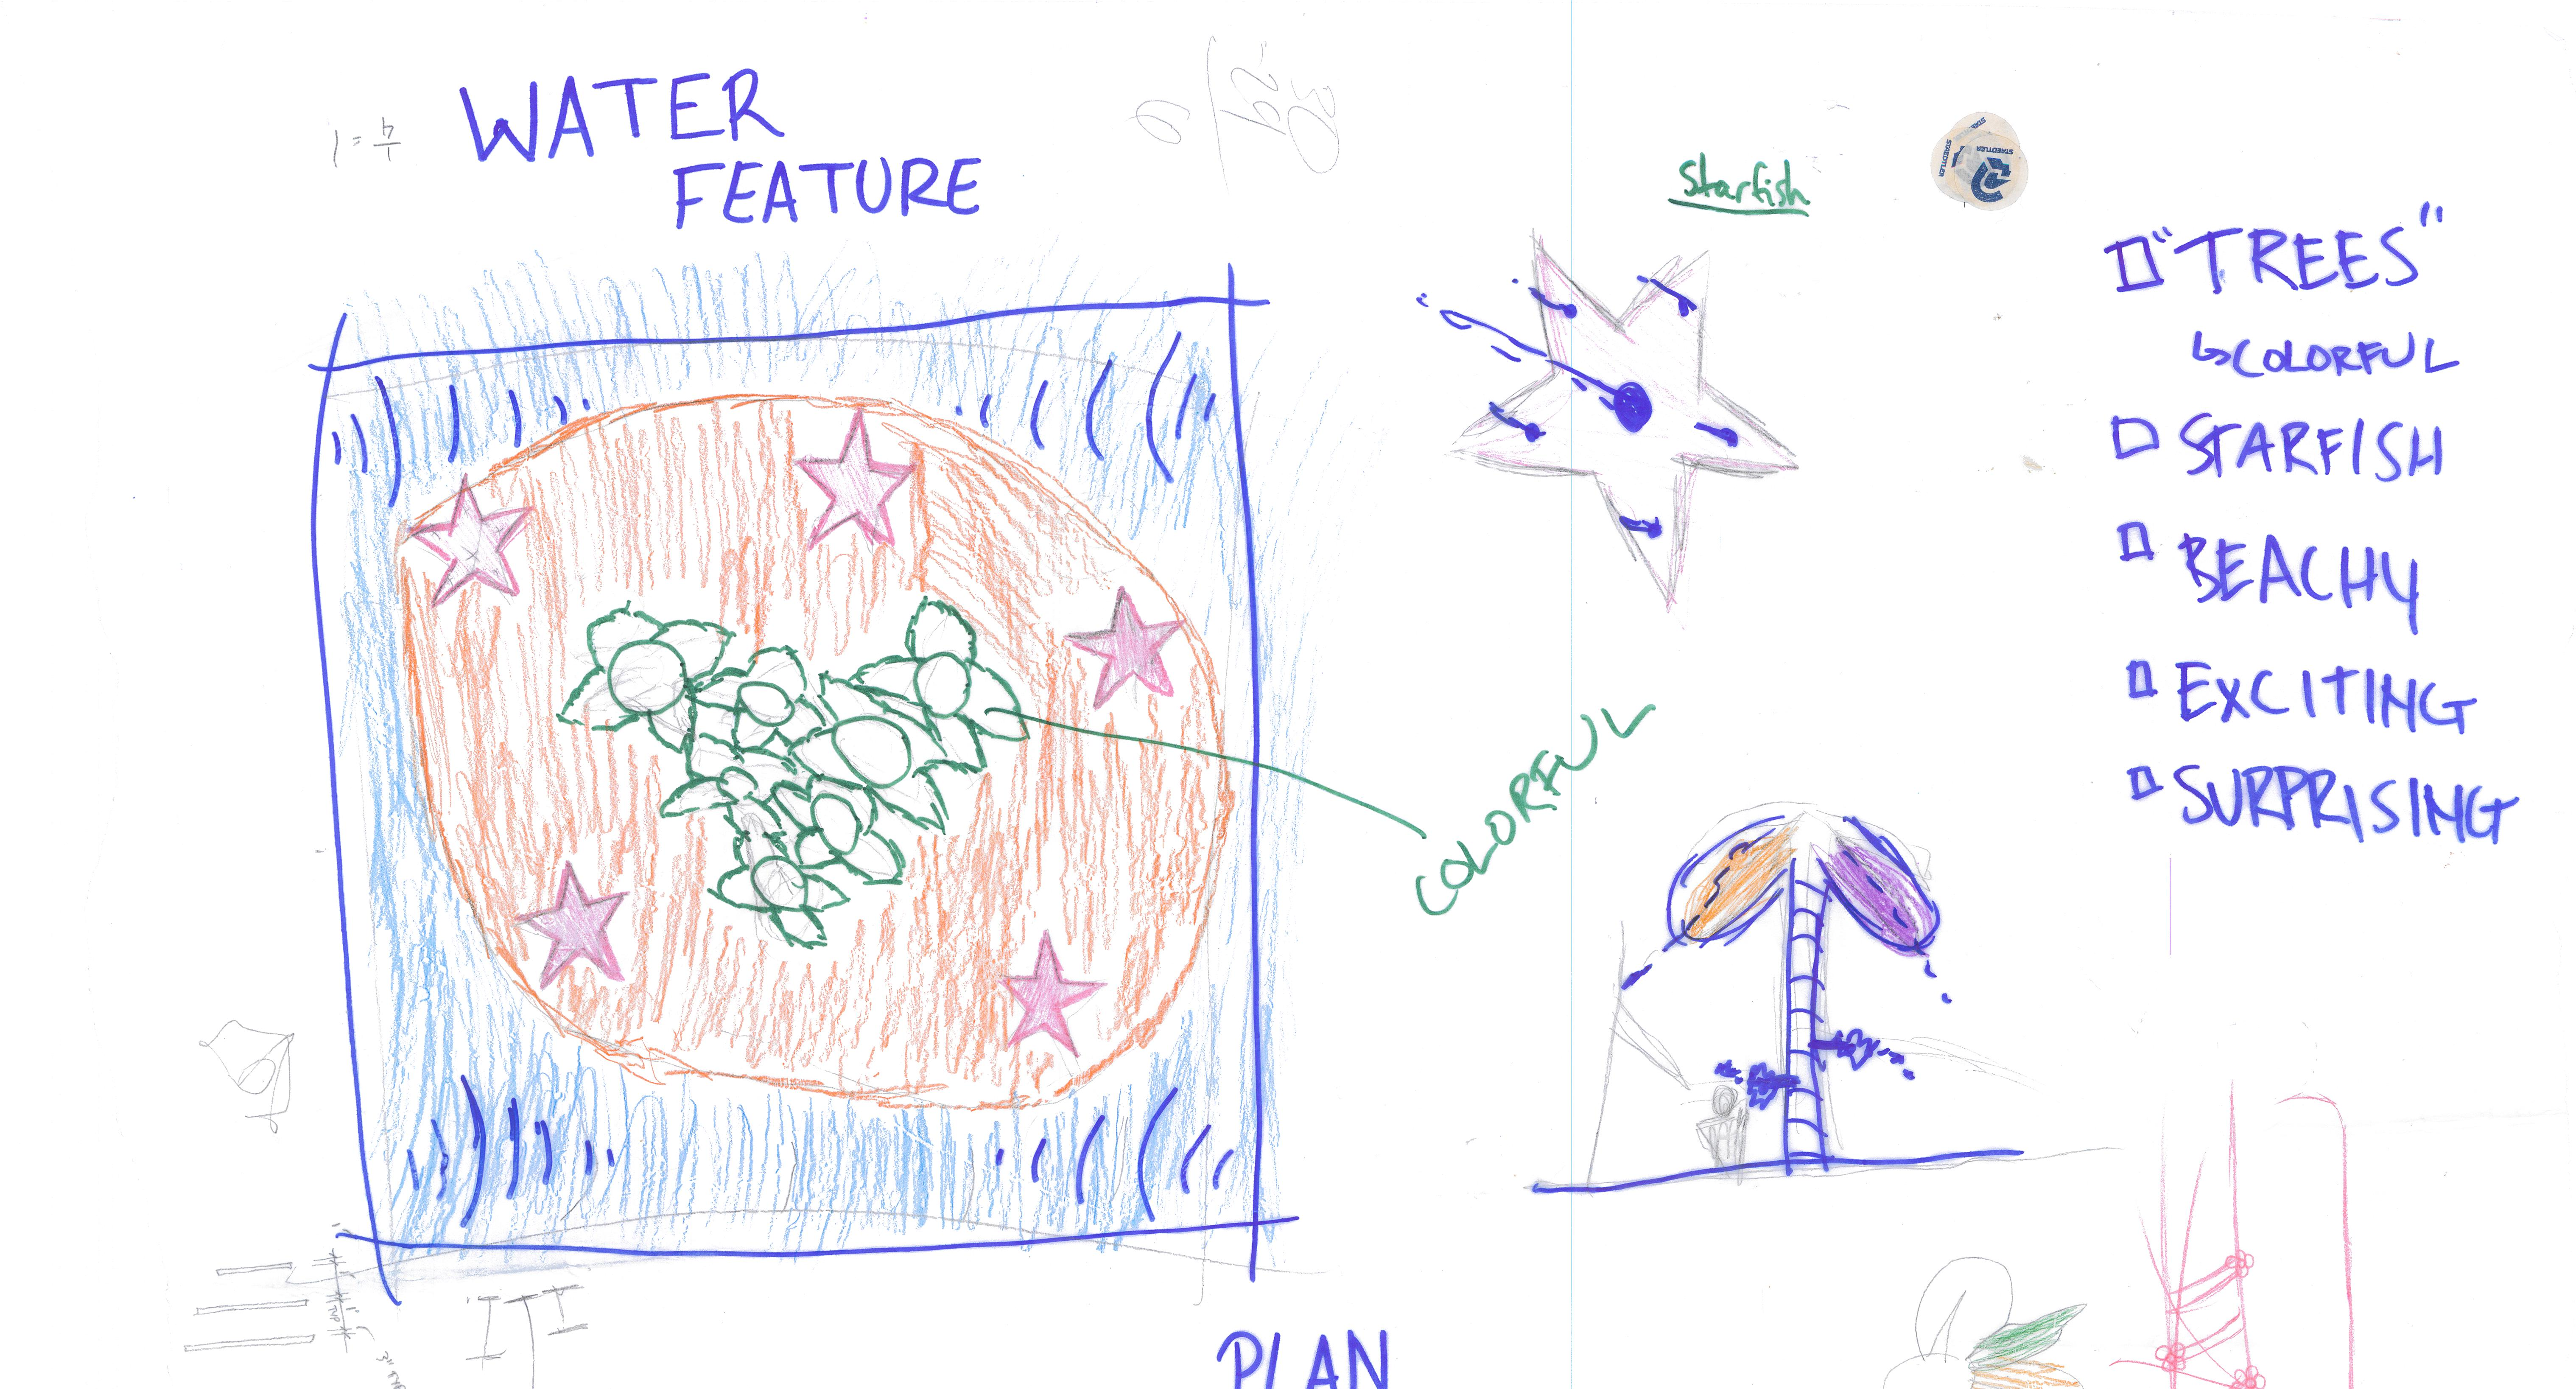 Water Feature Sketch